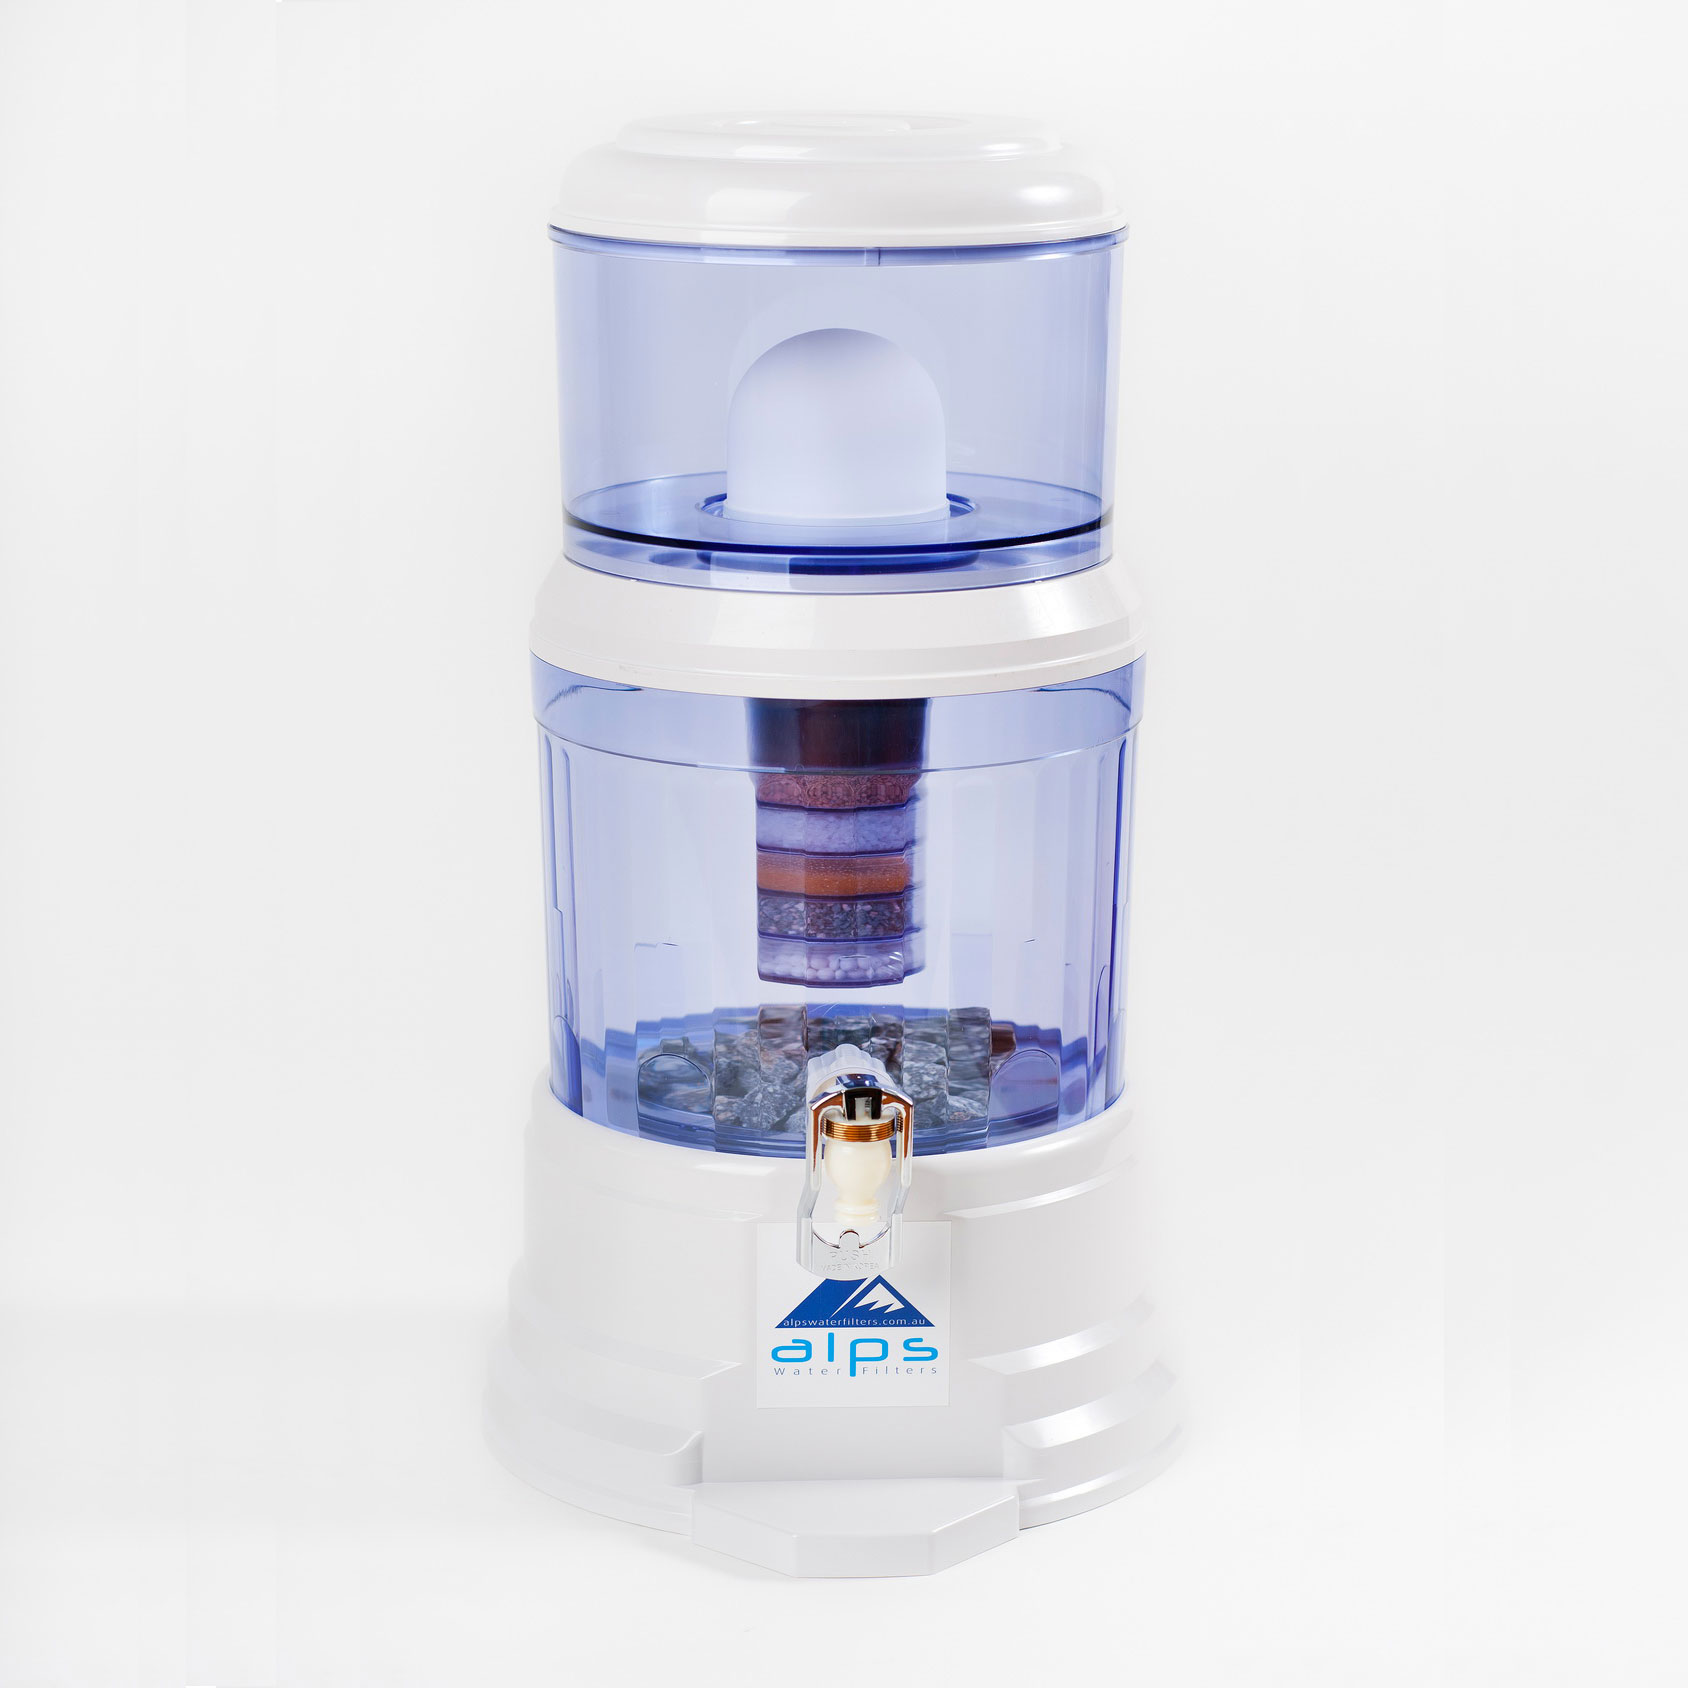 alps water filters 12 litre - Water Filter